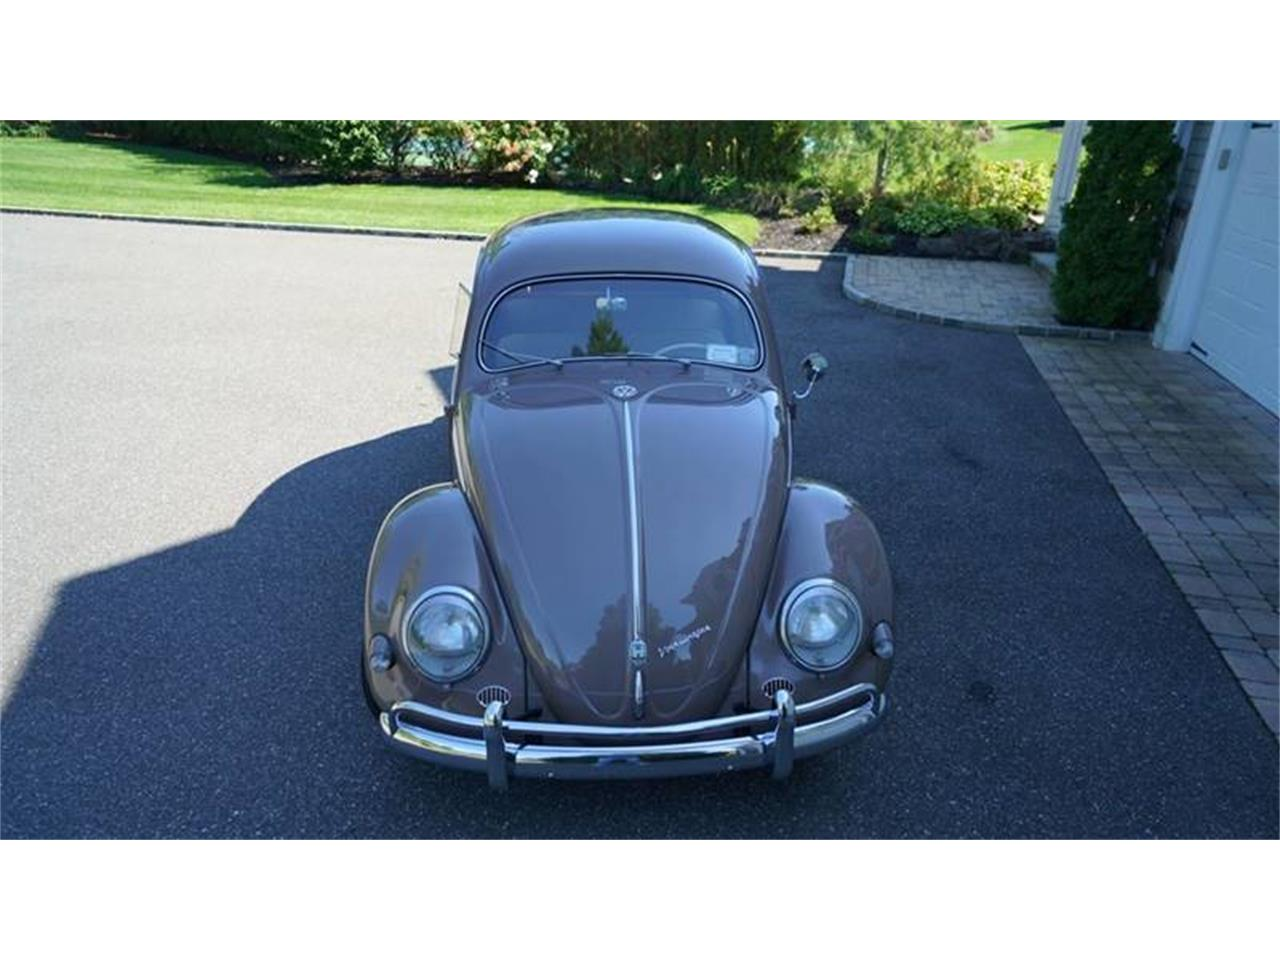 Large Picture of '55 Volkswagen Beetle located in Old Bethpage  New York - $37,500.00 - OVOE